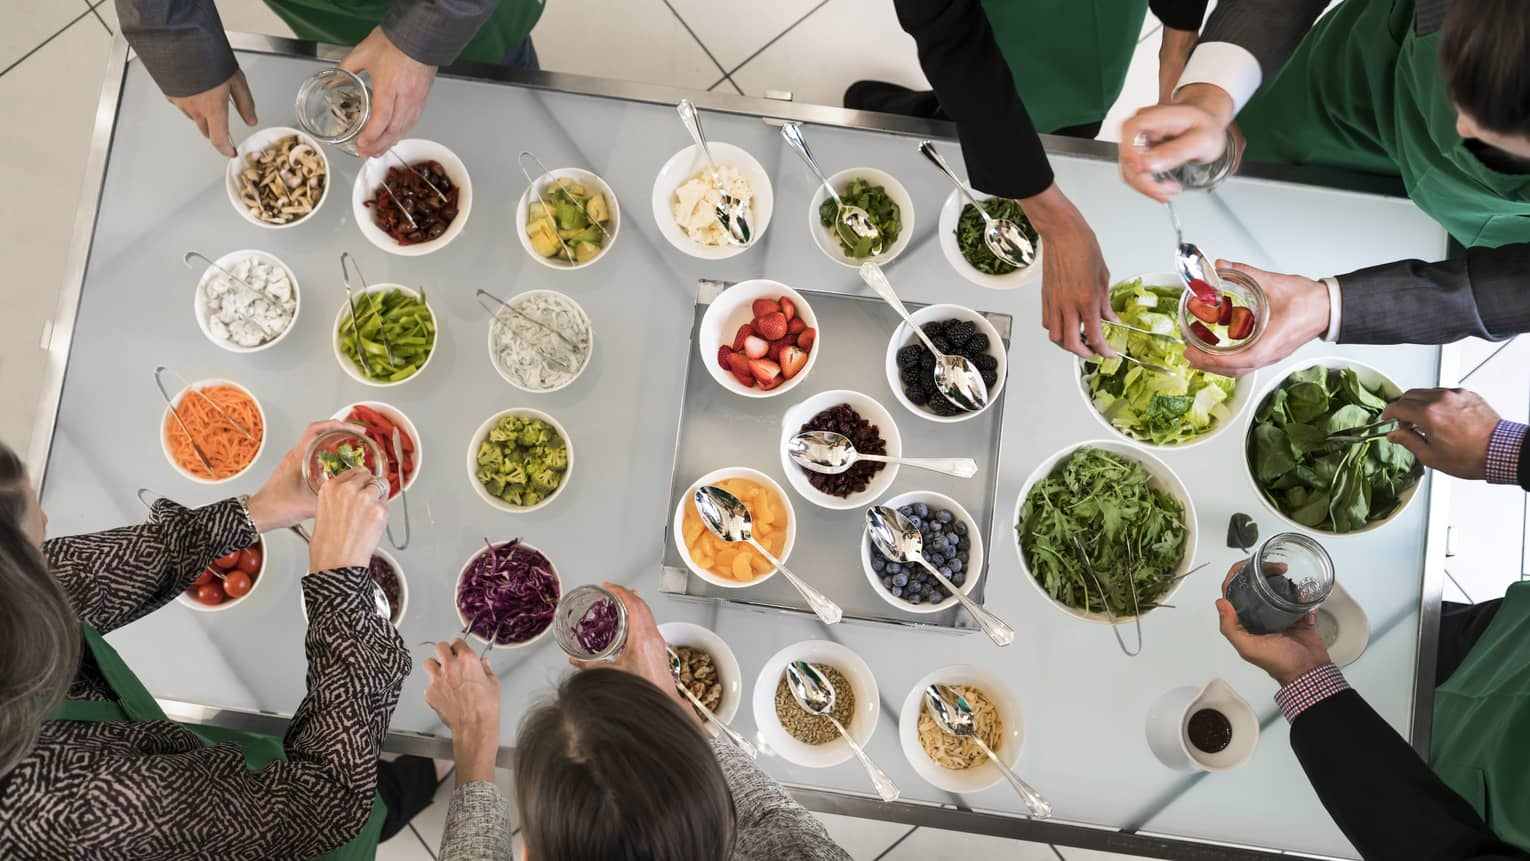 Aerial view of people gathered around buffet table salad bar with small bowls of fruit, vegetables